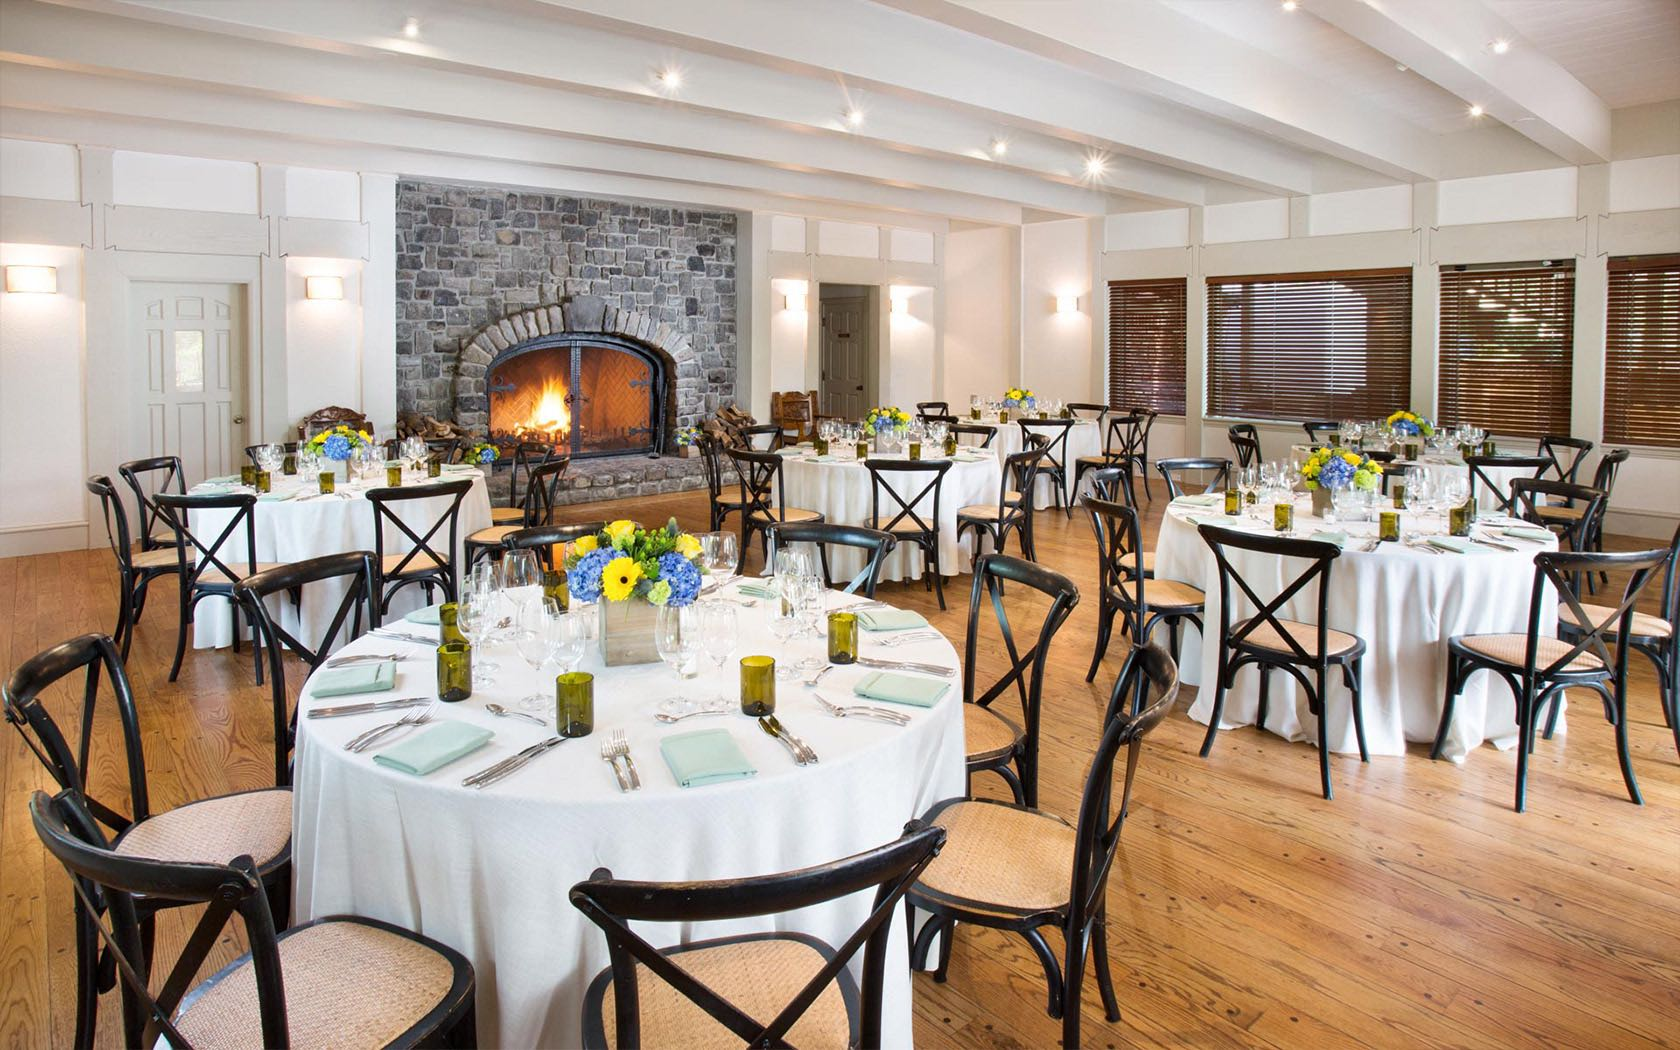 Event space with fireplace set up with round tables for reception